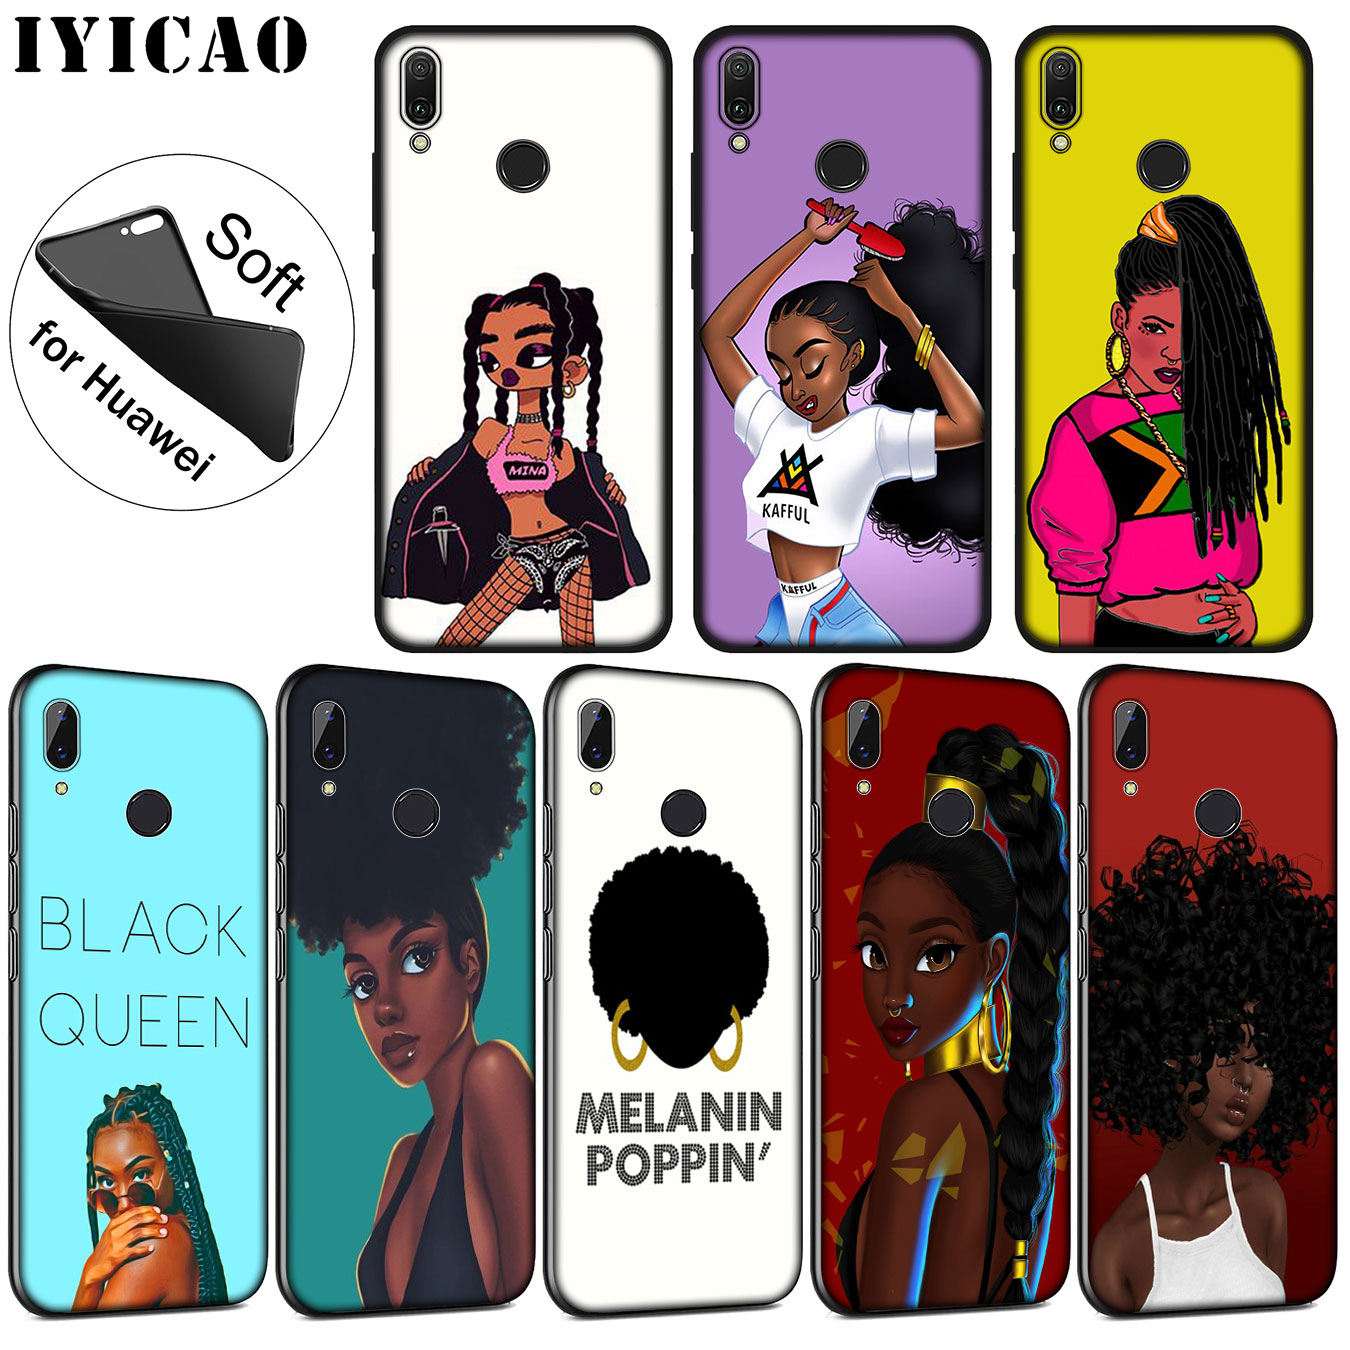 Phone Bags & Cases Charitable Iyicao New Personalized Melanin Poppin Black Girl Soft Case For Huawei P20 Pro P10 P9 P8 Lite Mini 2017 2015 P Smart 2019 Cover